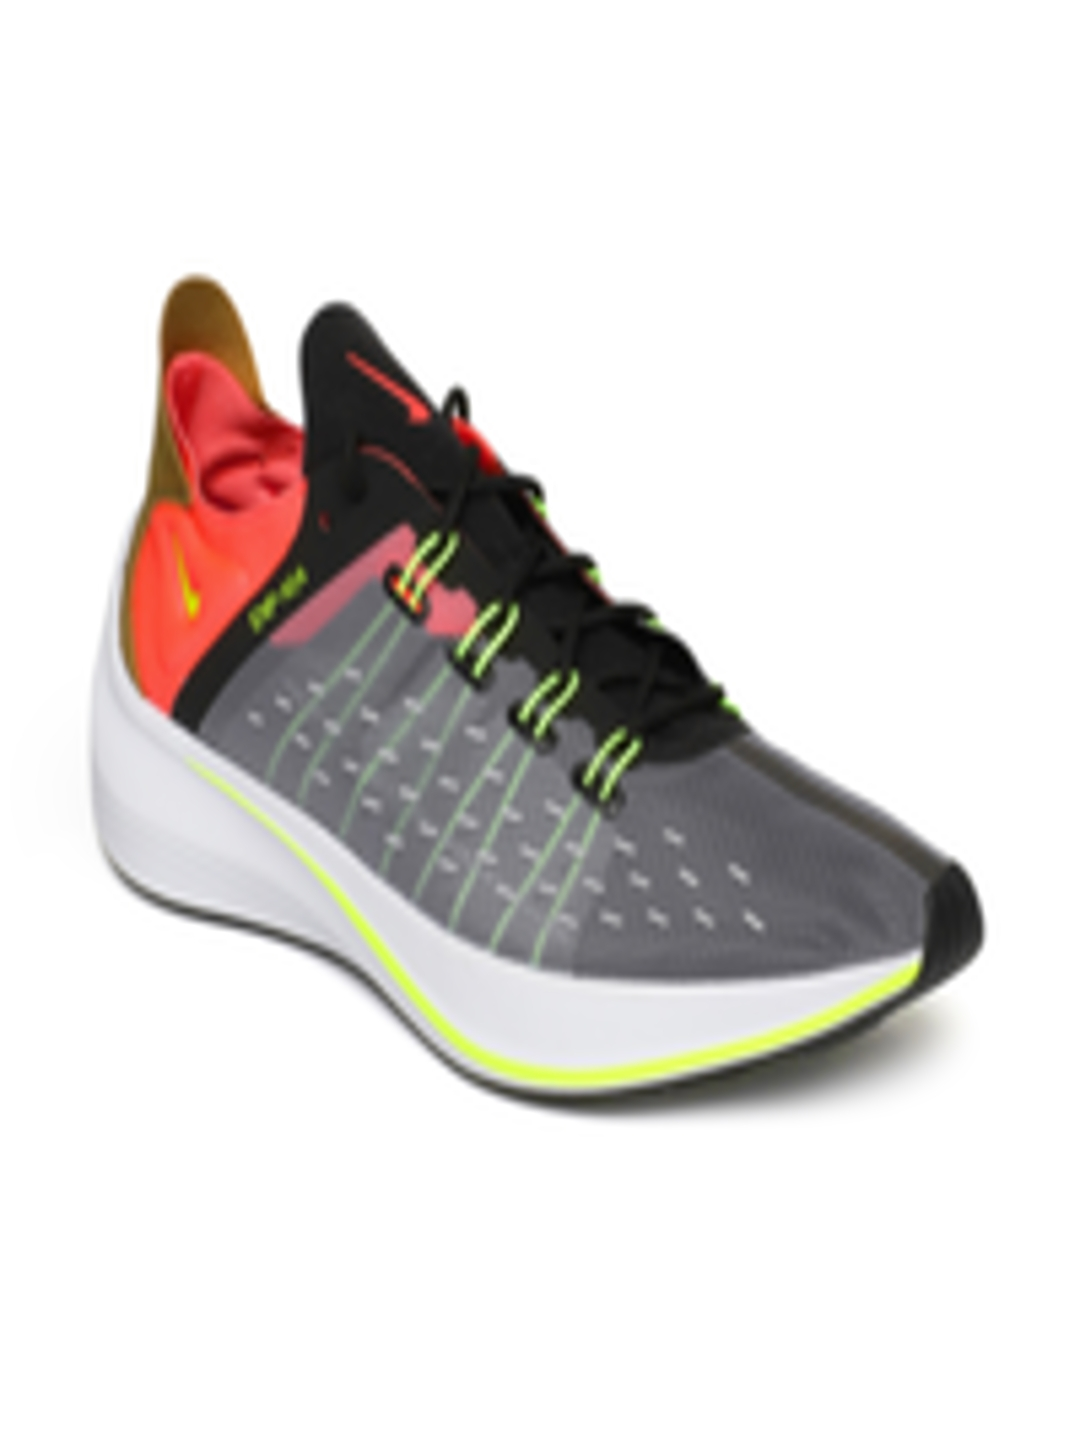 super popular d50a2 0b783 Buy Nike Men Grey   Fluorescent Orange Printed EXP X14 Running Shoes - Sports  Shoes for Men 6676943   Myntra